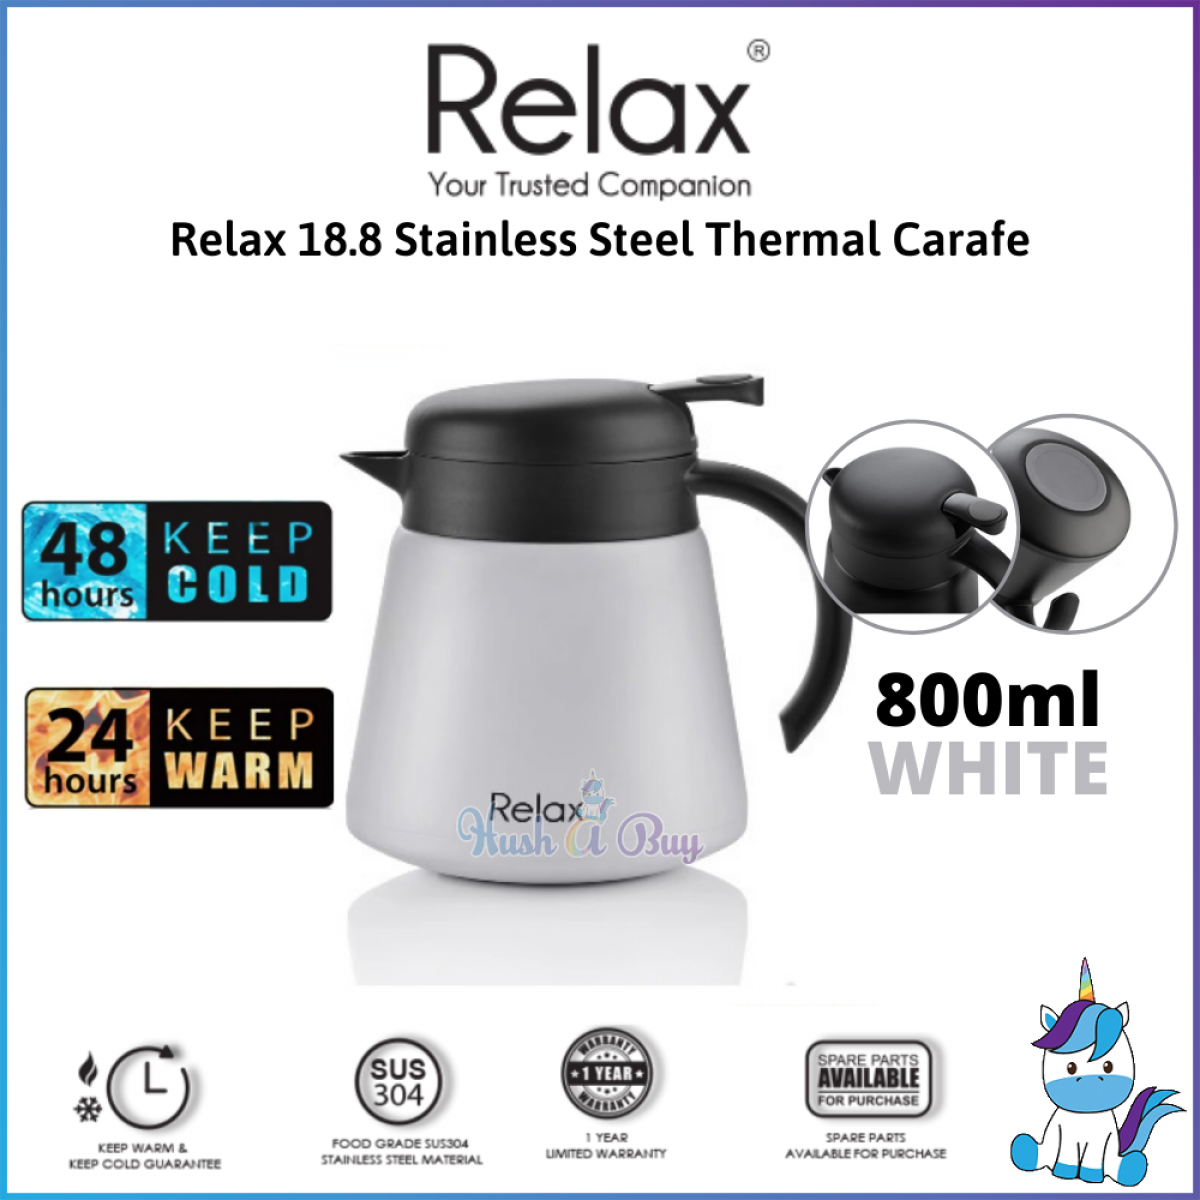 RELAX 18.8 Stainless Steel Thermal Carafe 800ml/1500ml/2000ml (1 Year Warranty)